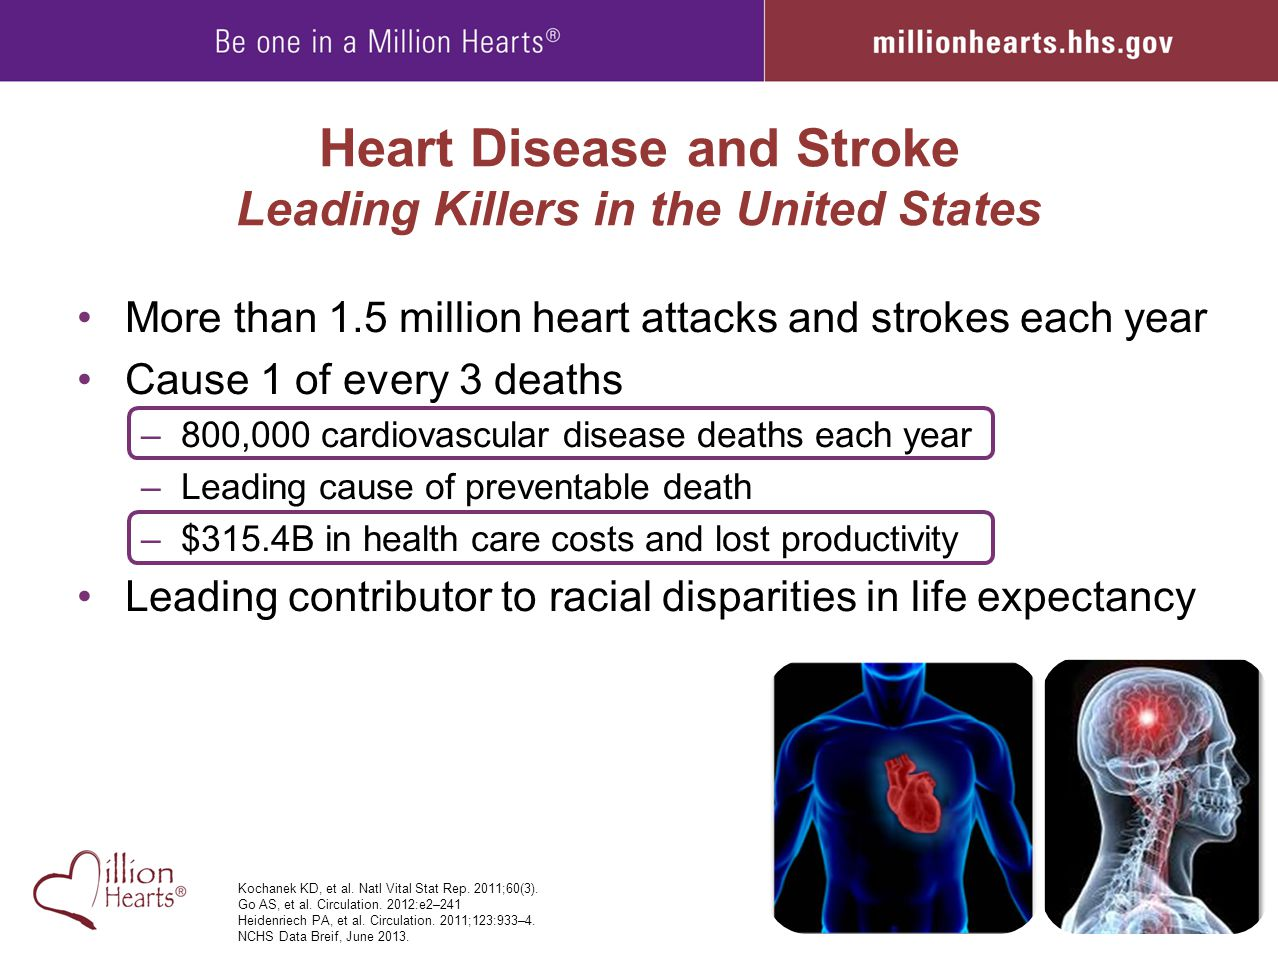 200,000 Preventable Deaths from Heart Disease and Stroke Many of the deaths caused by heart disease and stroke are preventable Preventable deaths are those attributed to lack of preventive health care or timely and effective medical care